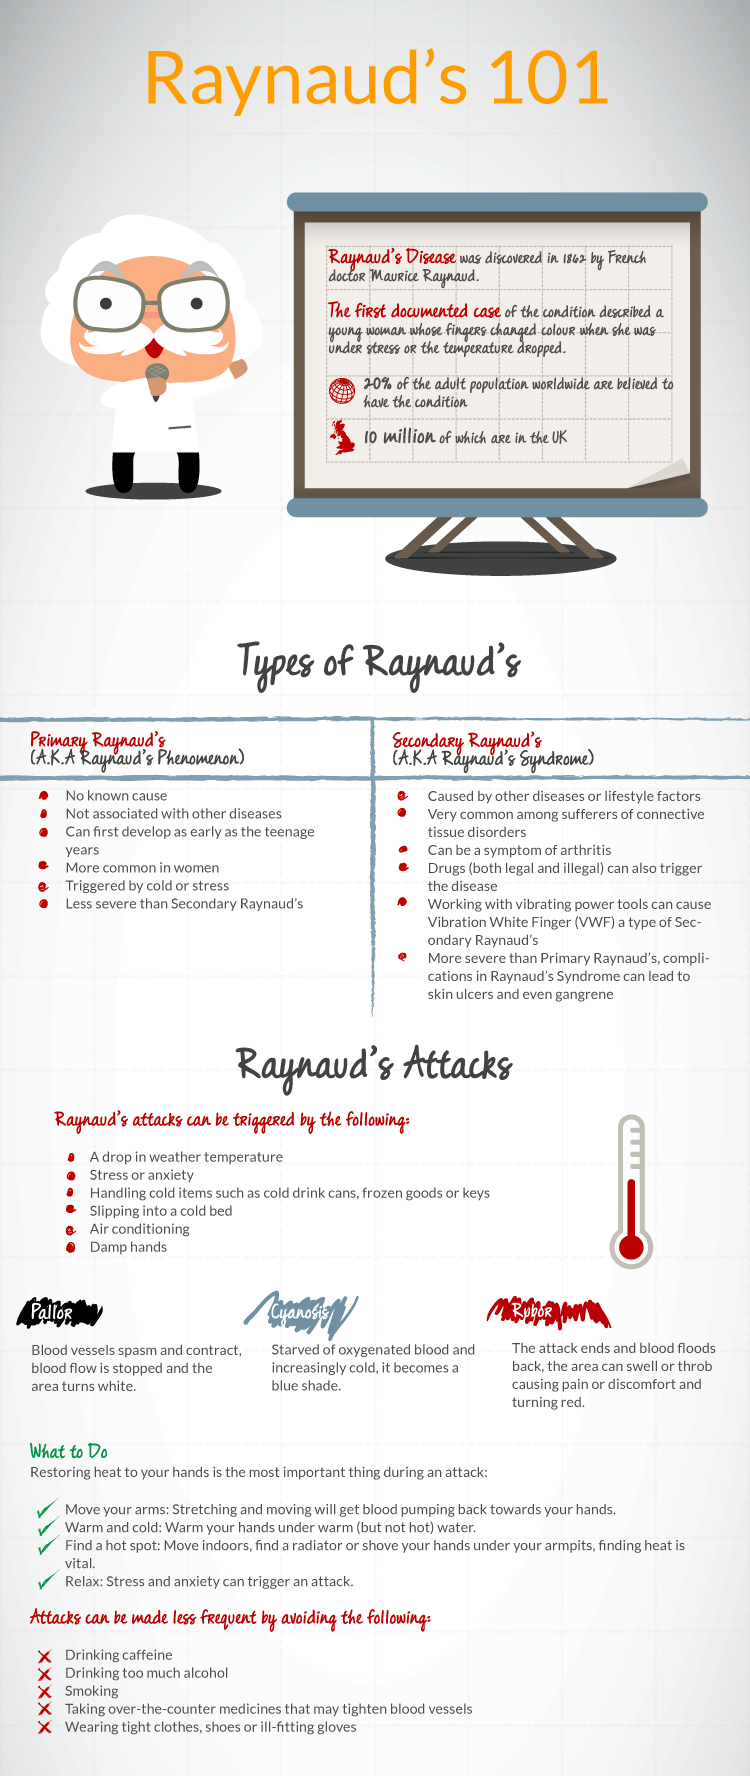 Raynaud's Disease Infographic Raynaud's 101